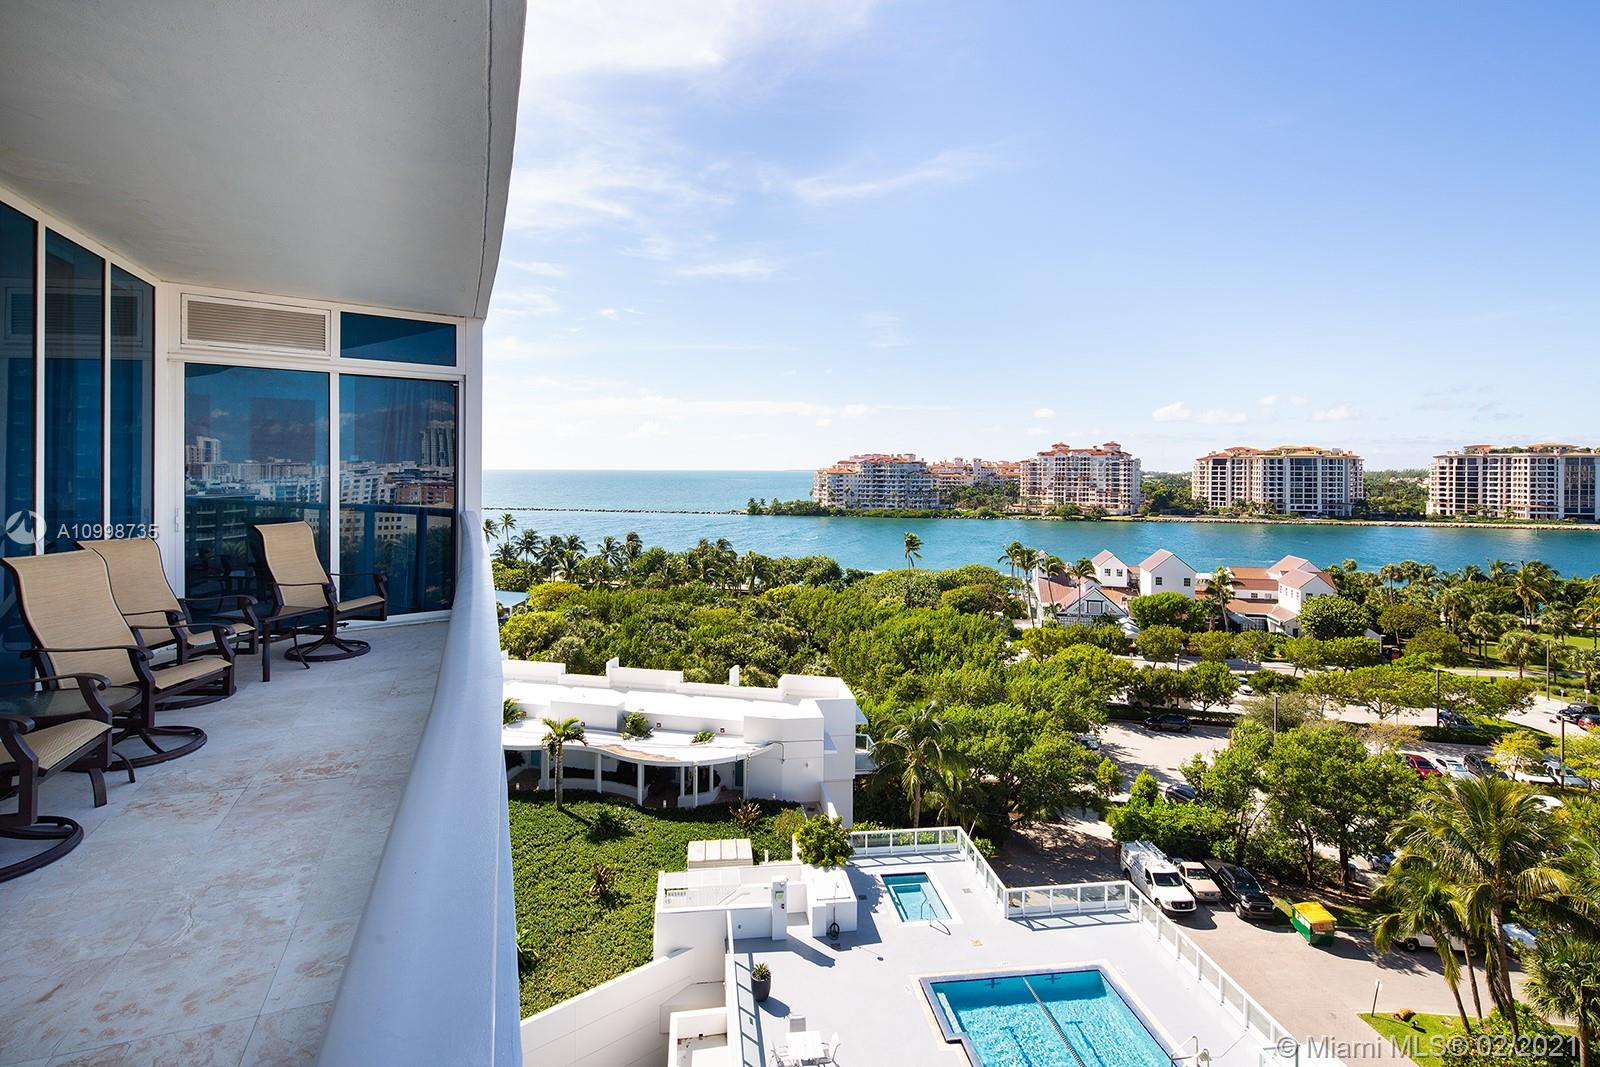 Step off the elevator into your private foyer before entering this spacious 2-beds, 2.5-baths unit at the Continuum. Enjoy 1591 SF of marble floors, floor-to-ceiling windows, Italian kitchen, granite countertops, Subzero refrigerator, Miele appliances and a large balcony overlooking South Pointe Park, cruise ship alley and Fisher Island. One assigned parking space 109A and storage unit 124. Continuum sits on 12 acres of luxurious amenities such as 1000 feet of white sandy beach, beach-side services from Patio restaurant, expansive free form lagoon pools and spa, fully equipped world-class fitness center with selection of classes, spa treatments, rooftop, lap pool, restaurant, 3 tennis courts, full-time concierge service, security and valet parking.